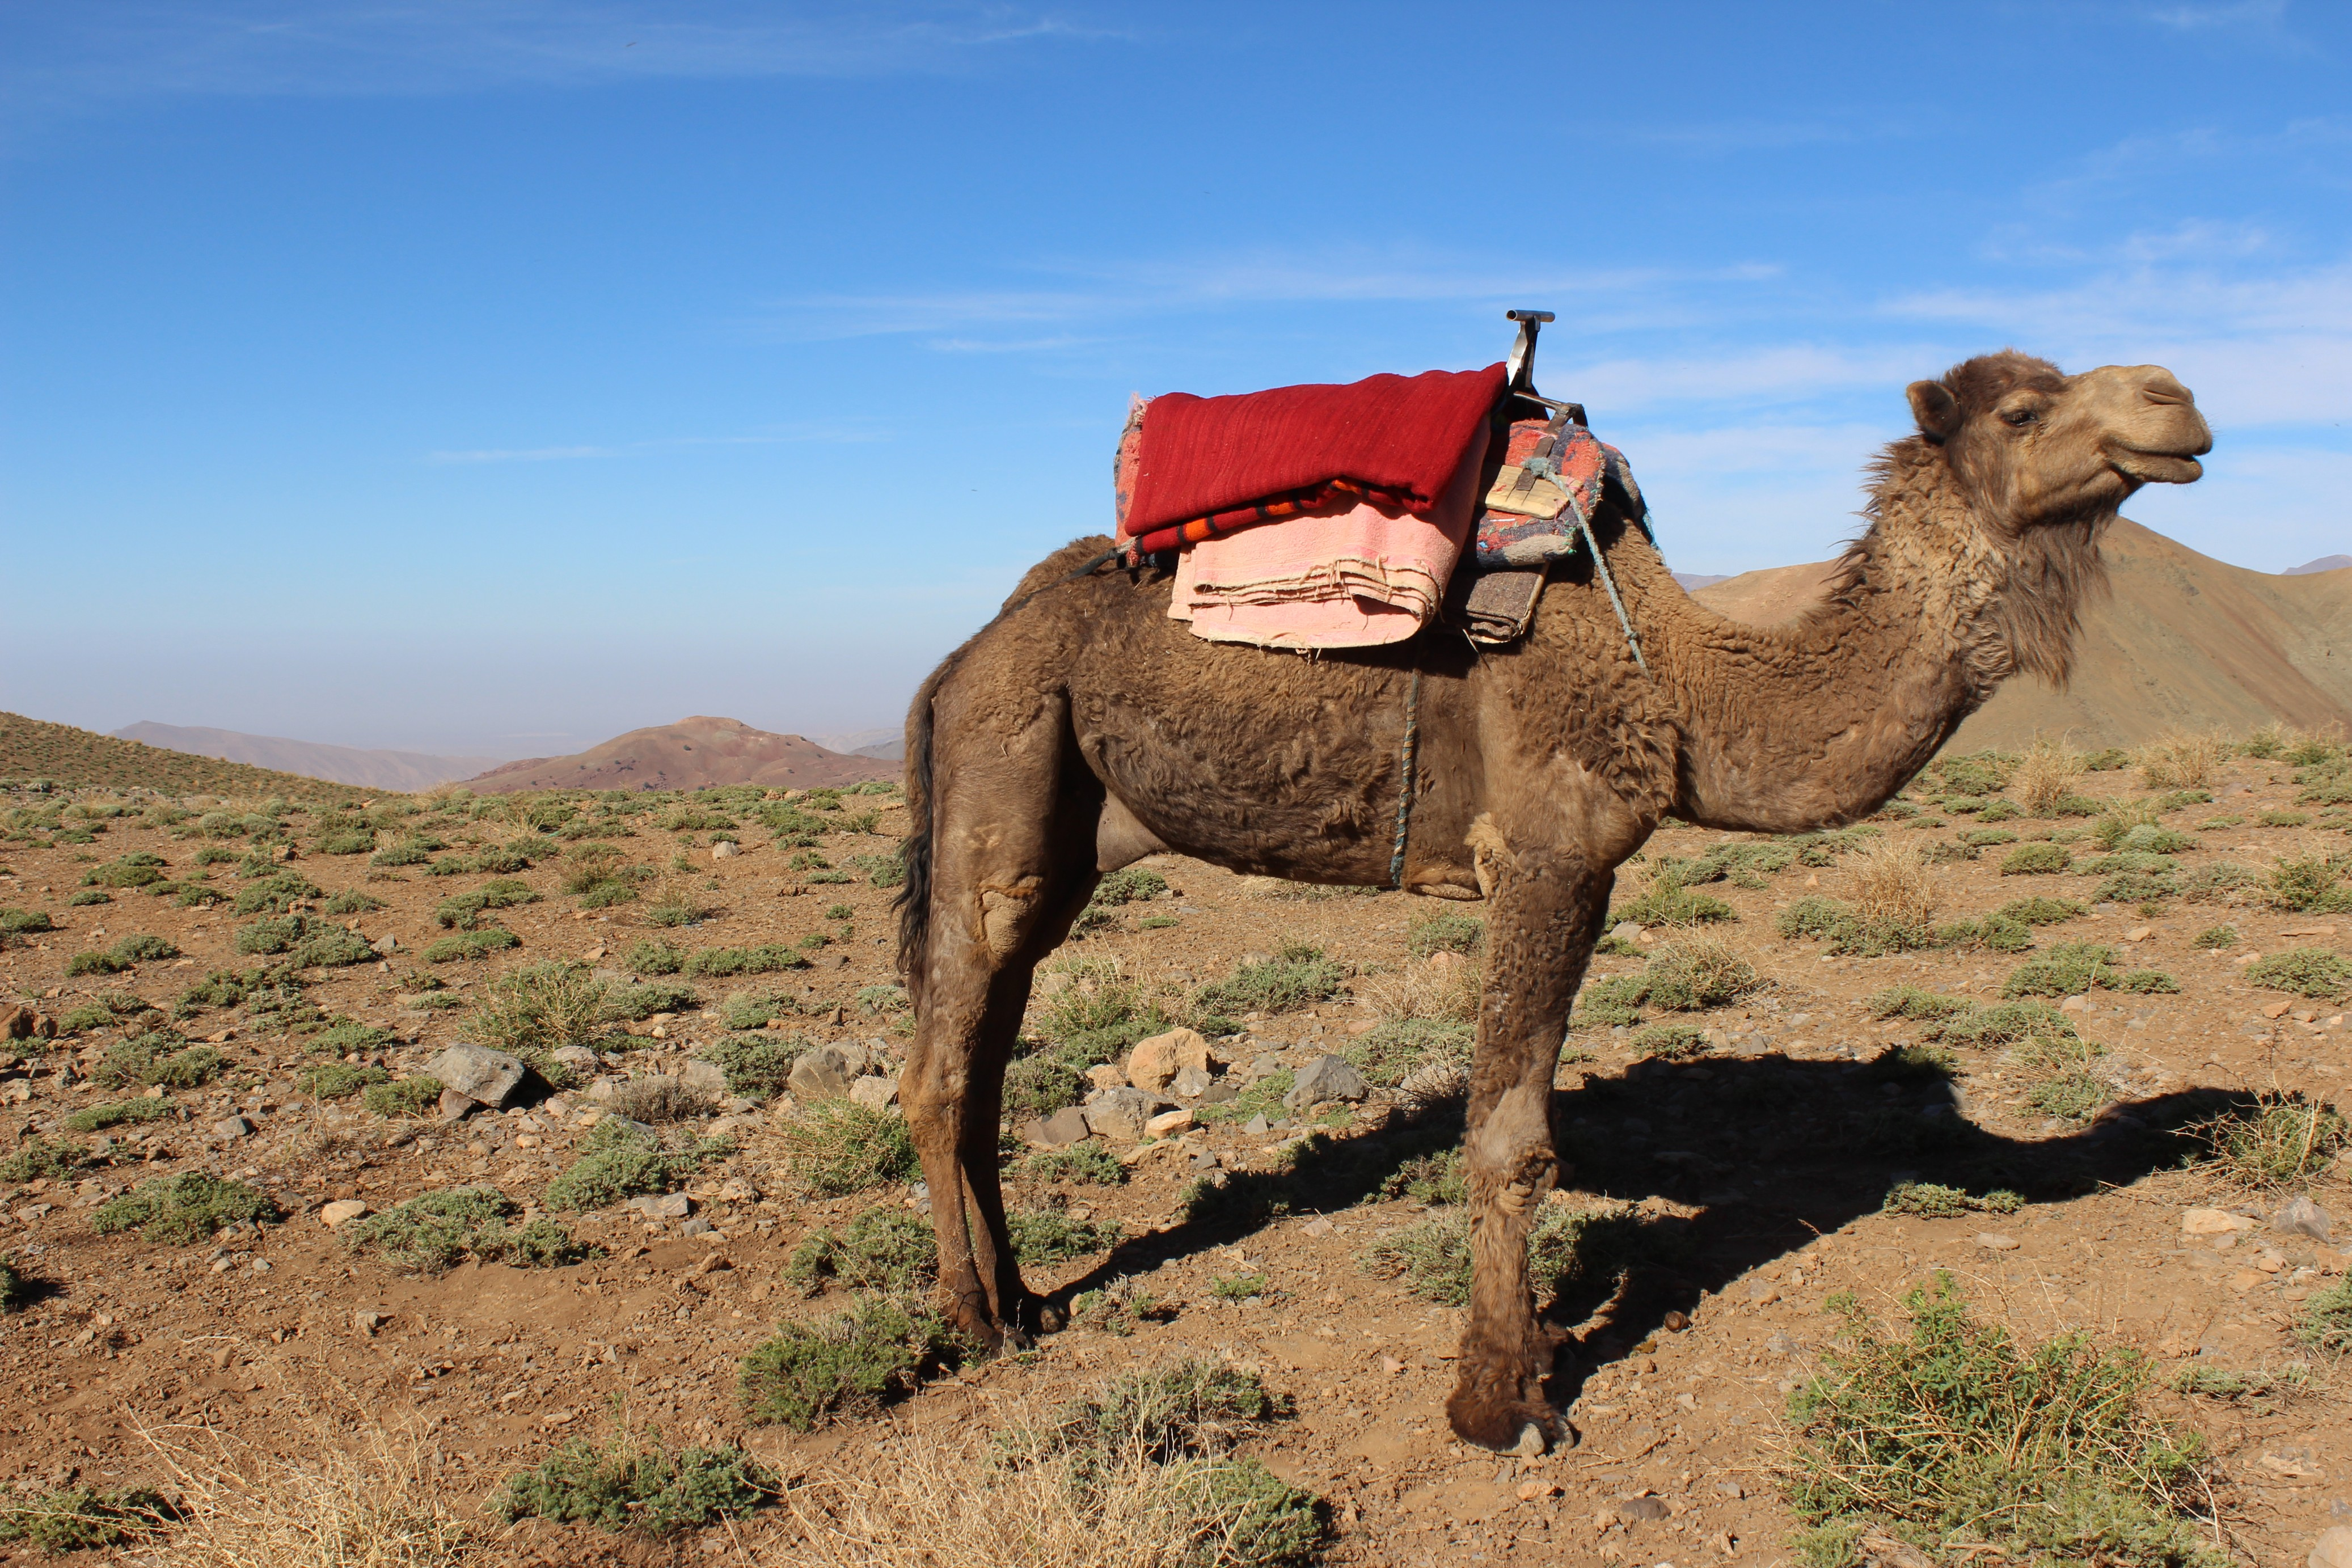 Camel on the Tatarart pastures, High Atlas mountains, Morocco